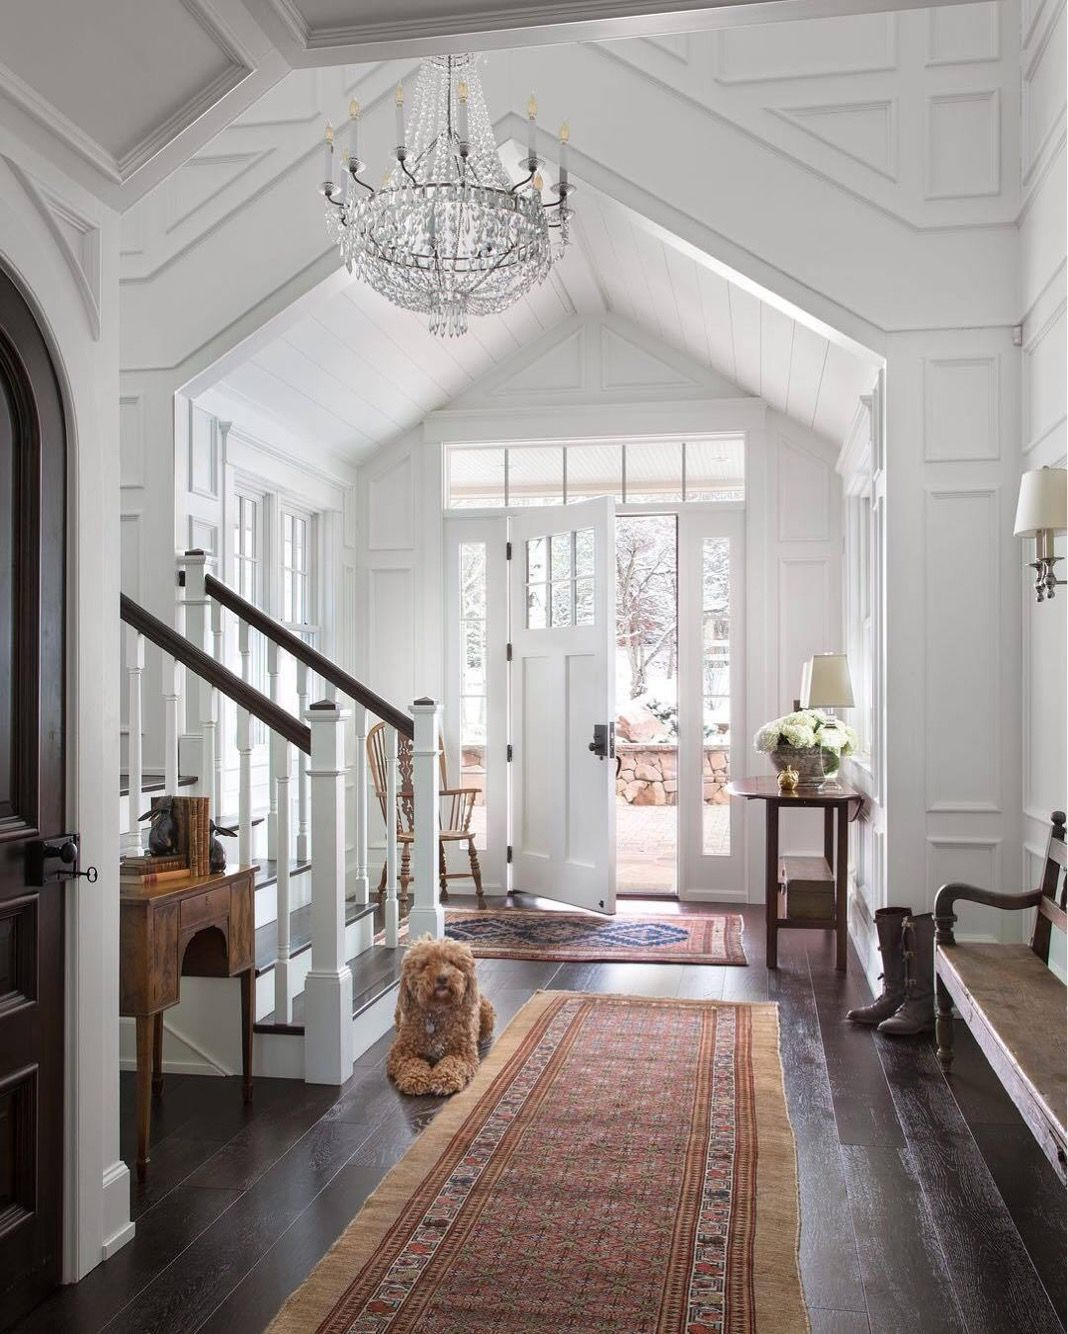 Those angles foyers hill interiors modern art hallways kitchen also best perfect home ideas images in decor attic rh pinterest